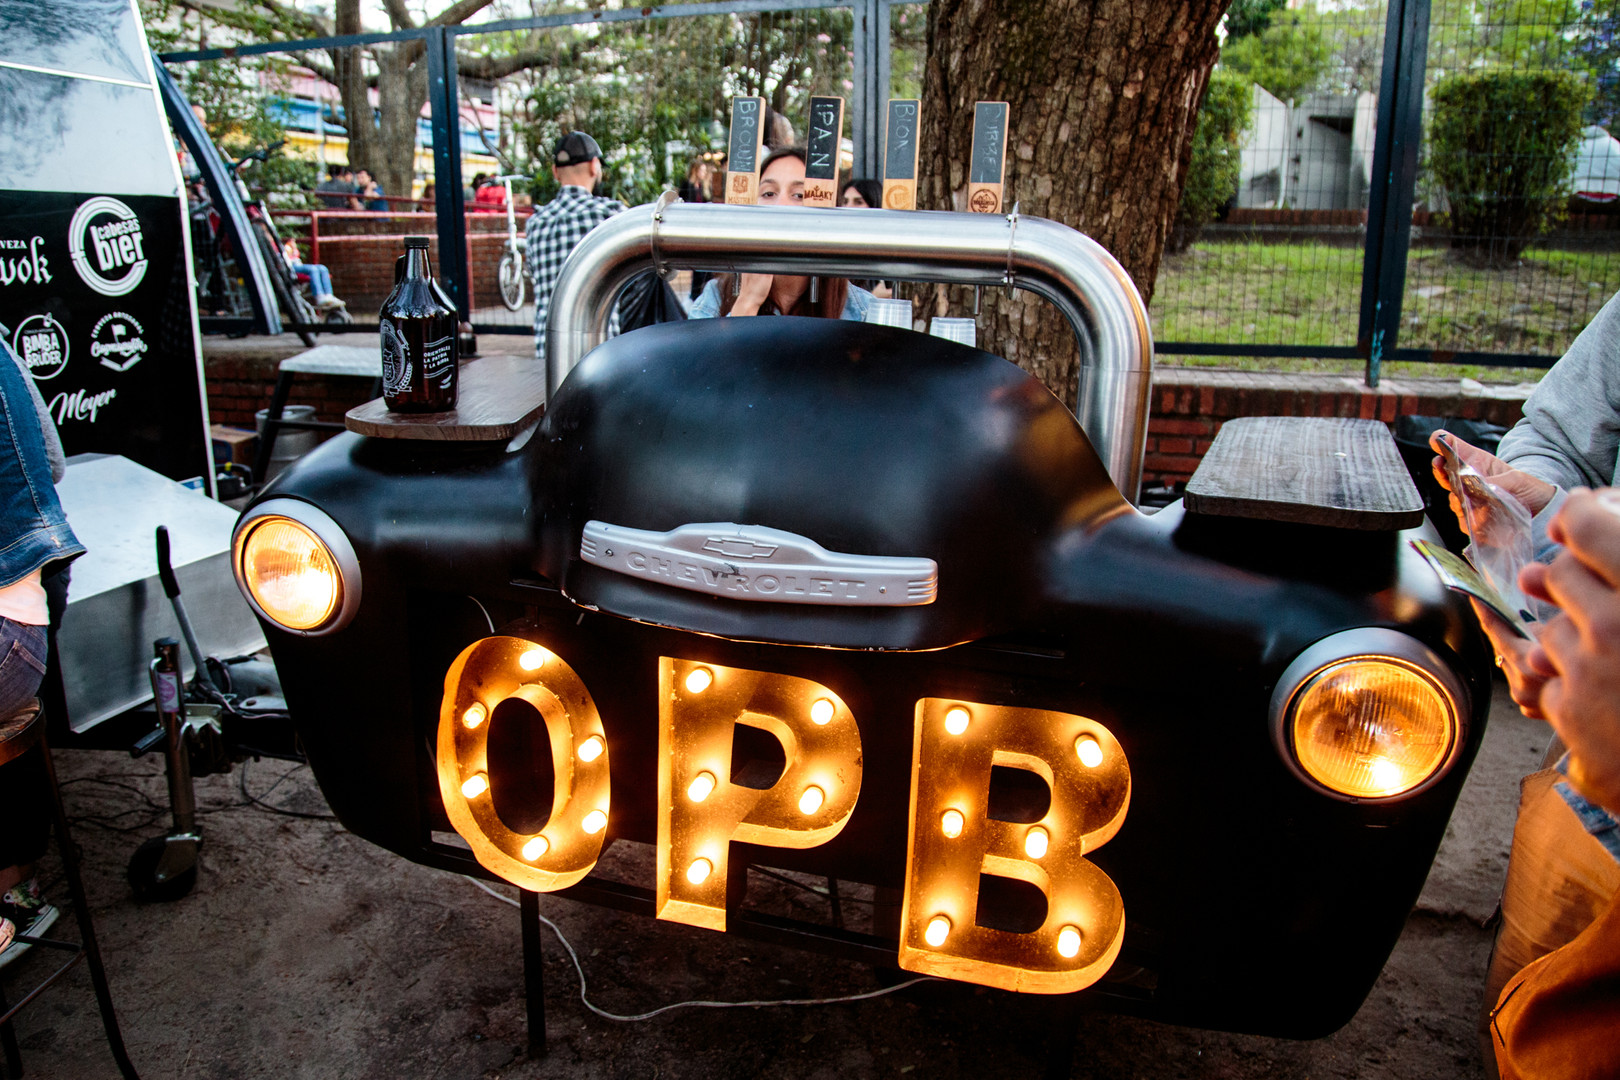 OPB-Pop-Up-169.jpg